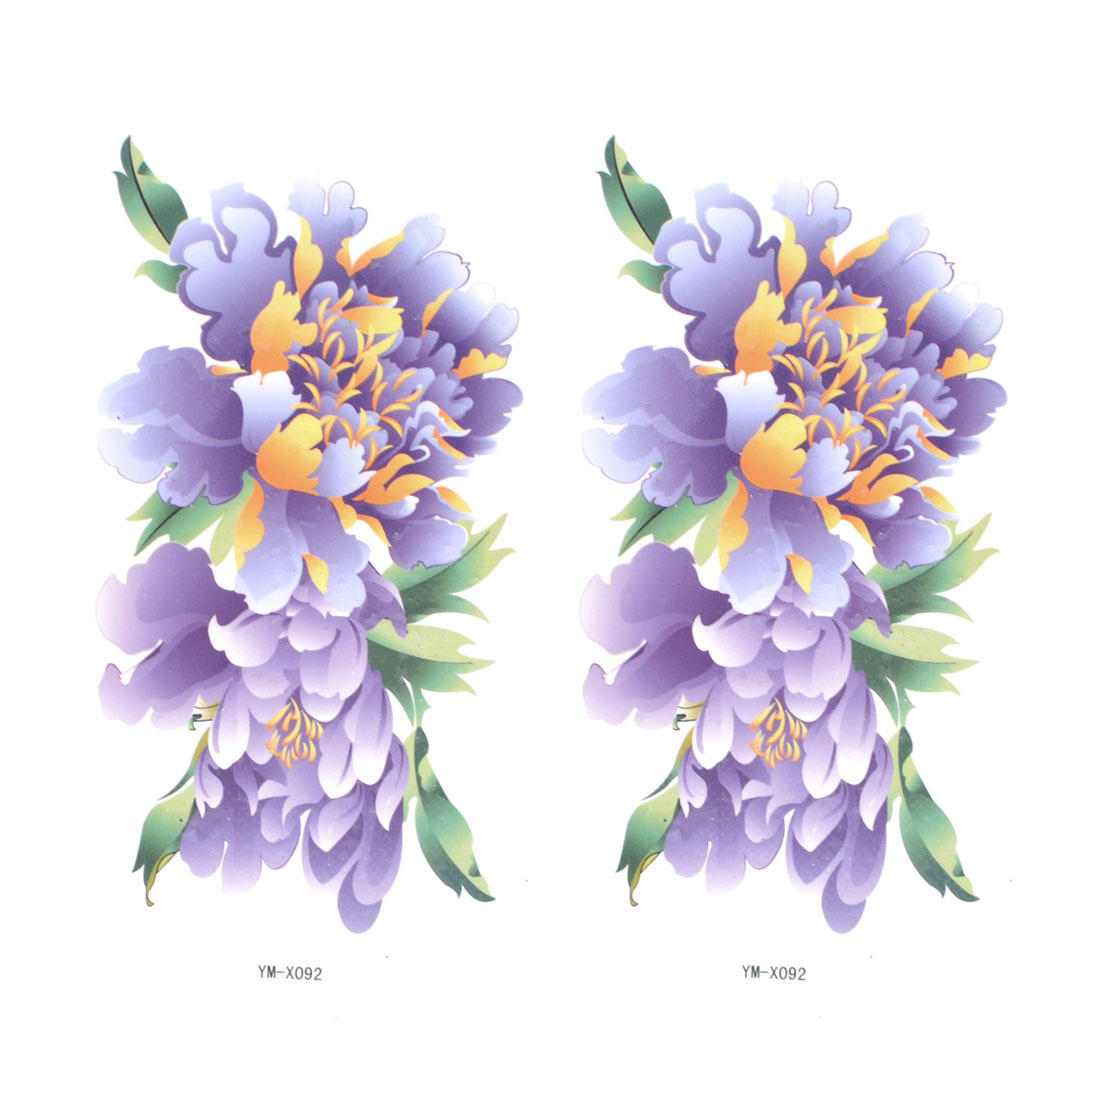 Skin Decorative Purple Floral Print Temporary Transfer Tattoo Stickers 2Pcs